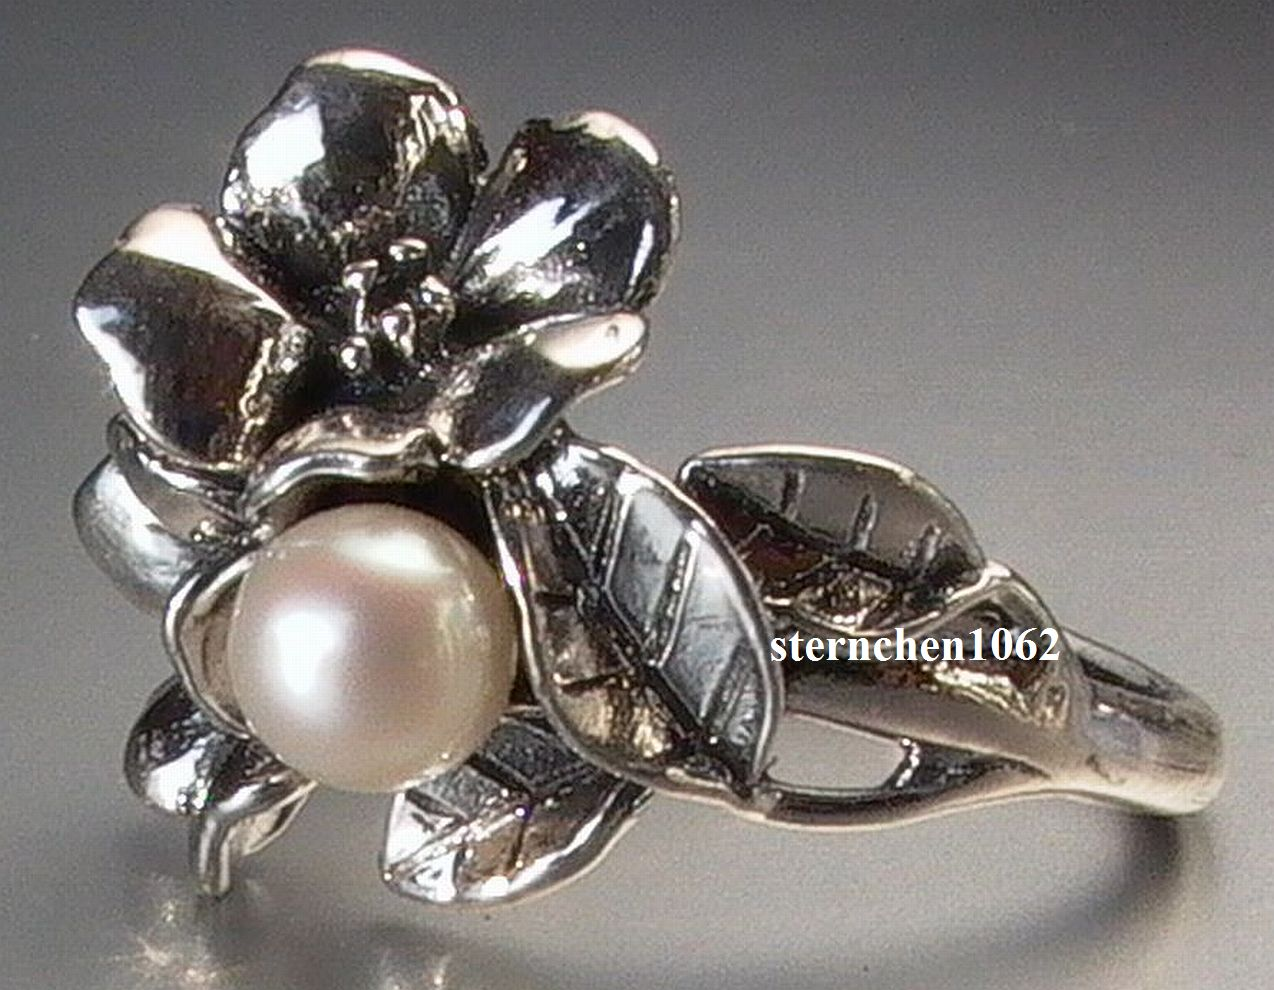 Sternchen 1062 - Trollbeads Ring   Hawthorn With Pearl   b4ca587dcf0d